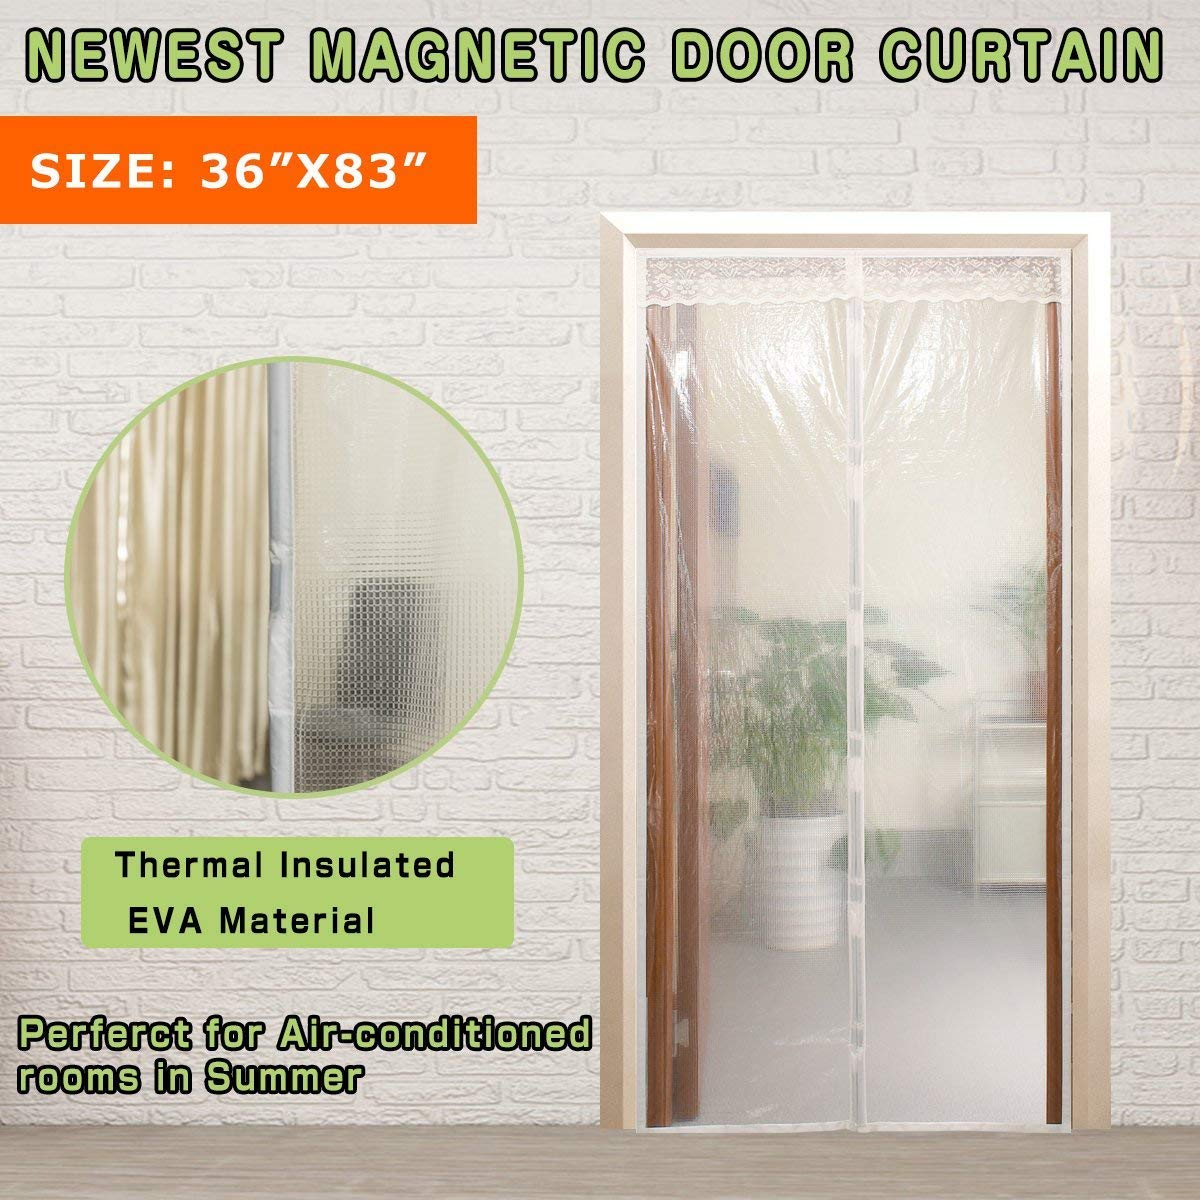 Transparent Magnetic Thermal Insulated Door Curtain Keep Draft And Kitchen Cooking Odor, Magnets Screen Door Fits Doors Up To 36'x82' For Air Conditioning Room Keeping Electric Bills shiyue factory